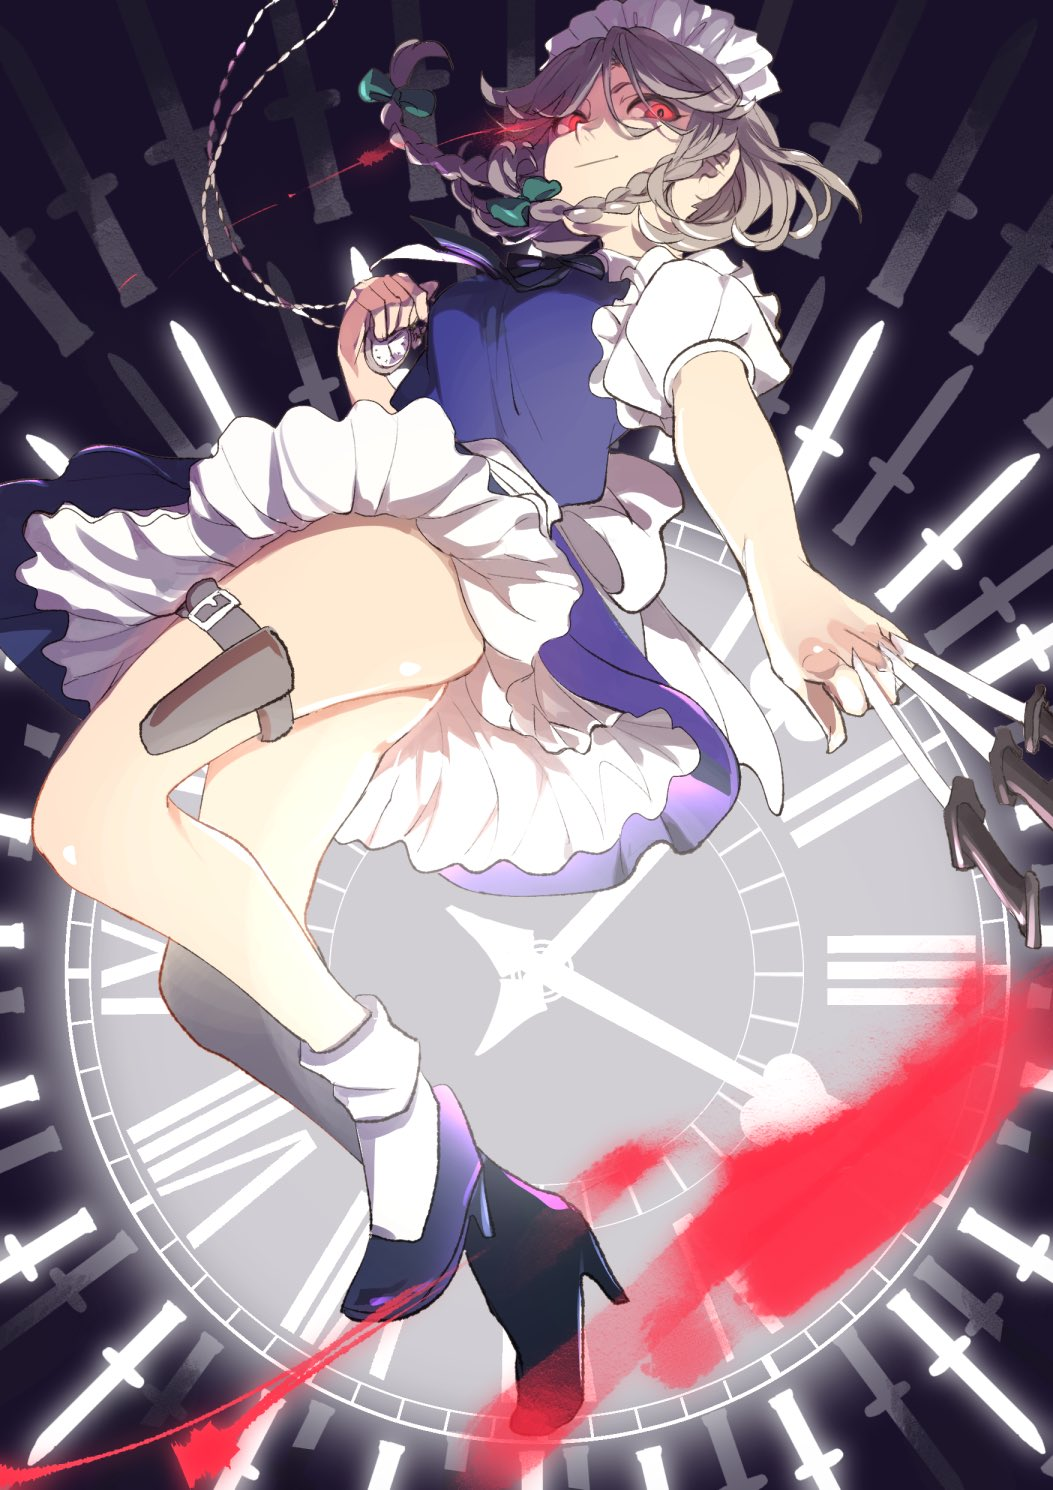 1girl bangs bare_legs blue_dress blue_footwear bow braid breasts clock commentary dress green_bow hair_bow hand_up high_heels highres holding holding_knife holding_weapon holster izayoi_sakuya joniko1110 knife knives_between_fingers looking_at_viewer maid maid_headdress medium_breasts petticoat pocket_watch puffy_short_sleeves puffy_sleeves red_eyes roman_numerals shirt short_dress short_hair short_sleeves silver_hair smile socks solo thigh_holster thighs touhou twin_braids watch weapon white_legwear white_shirt